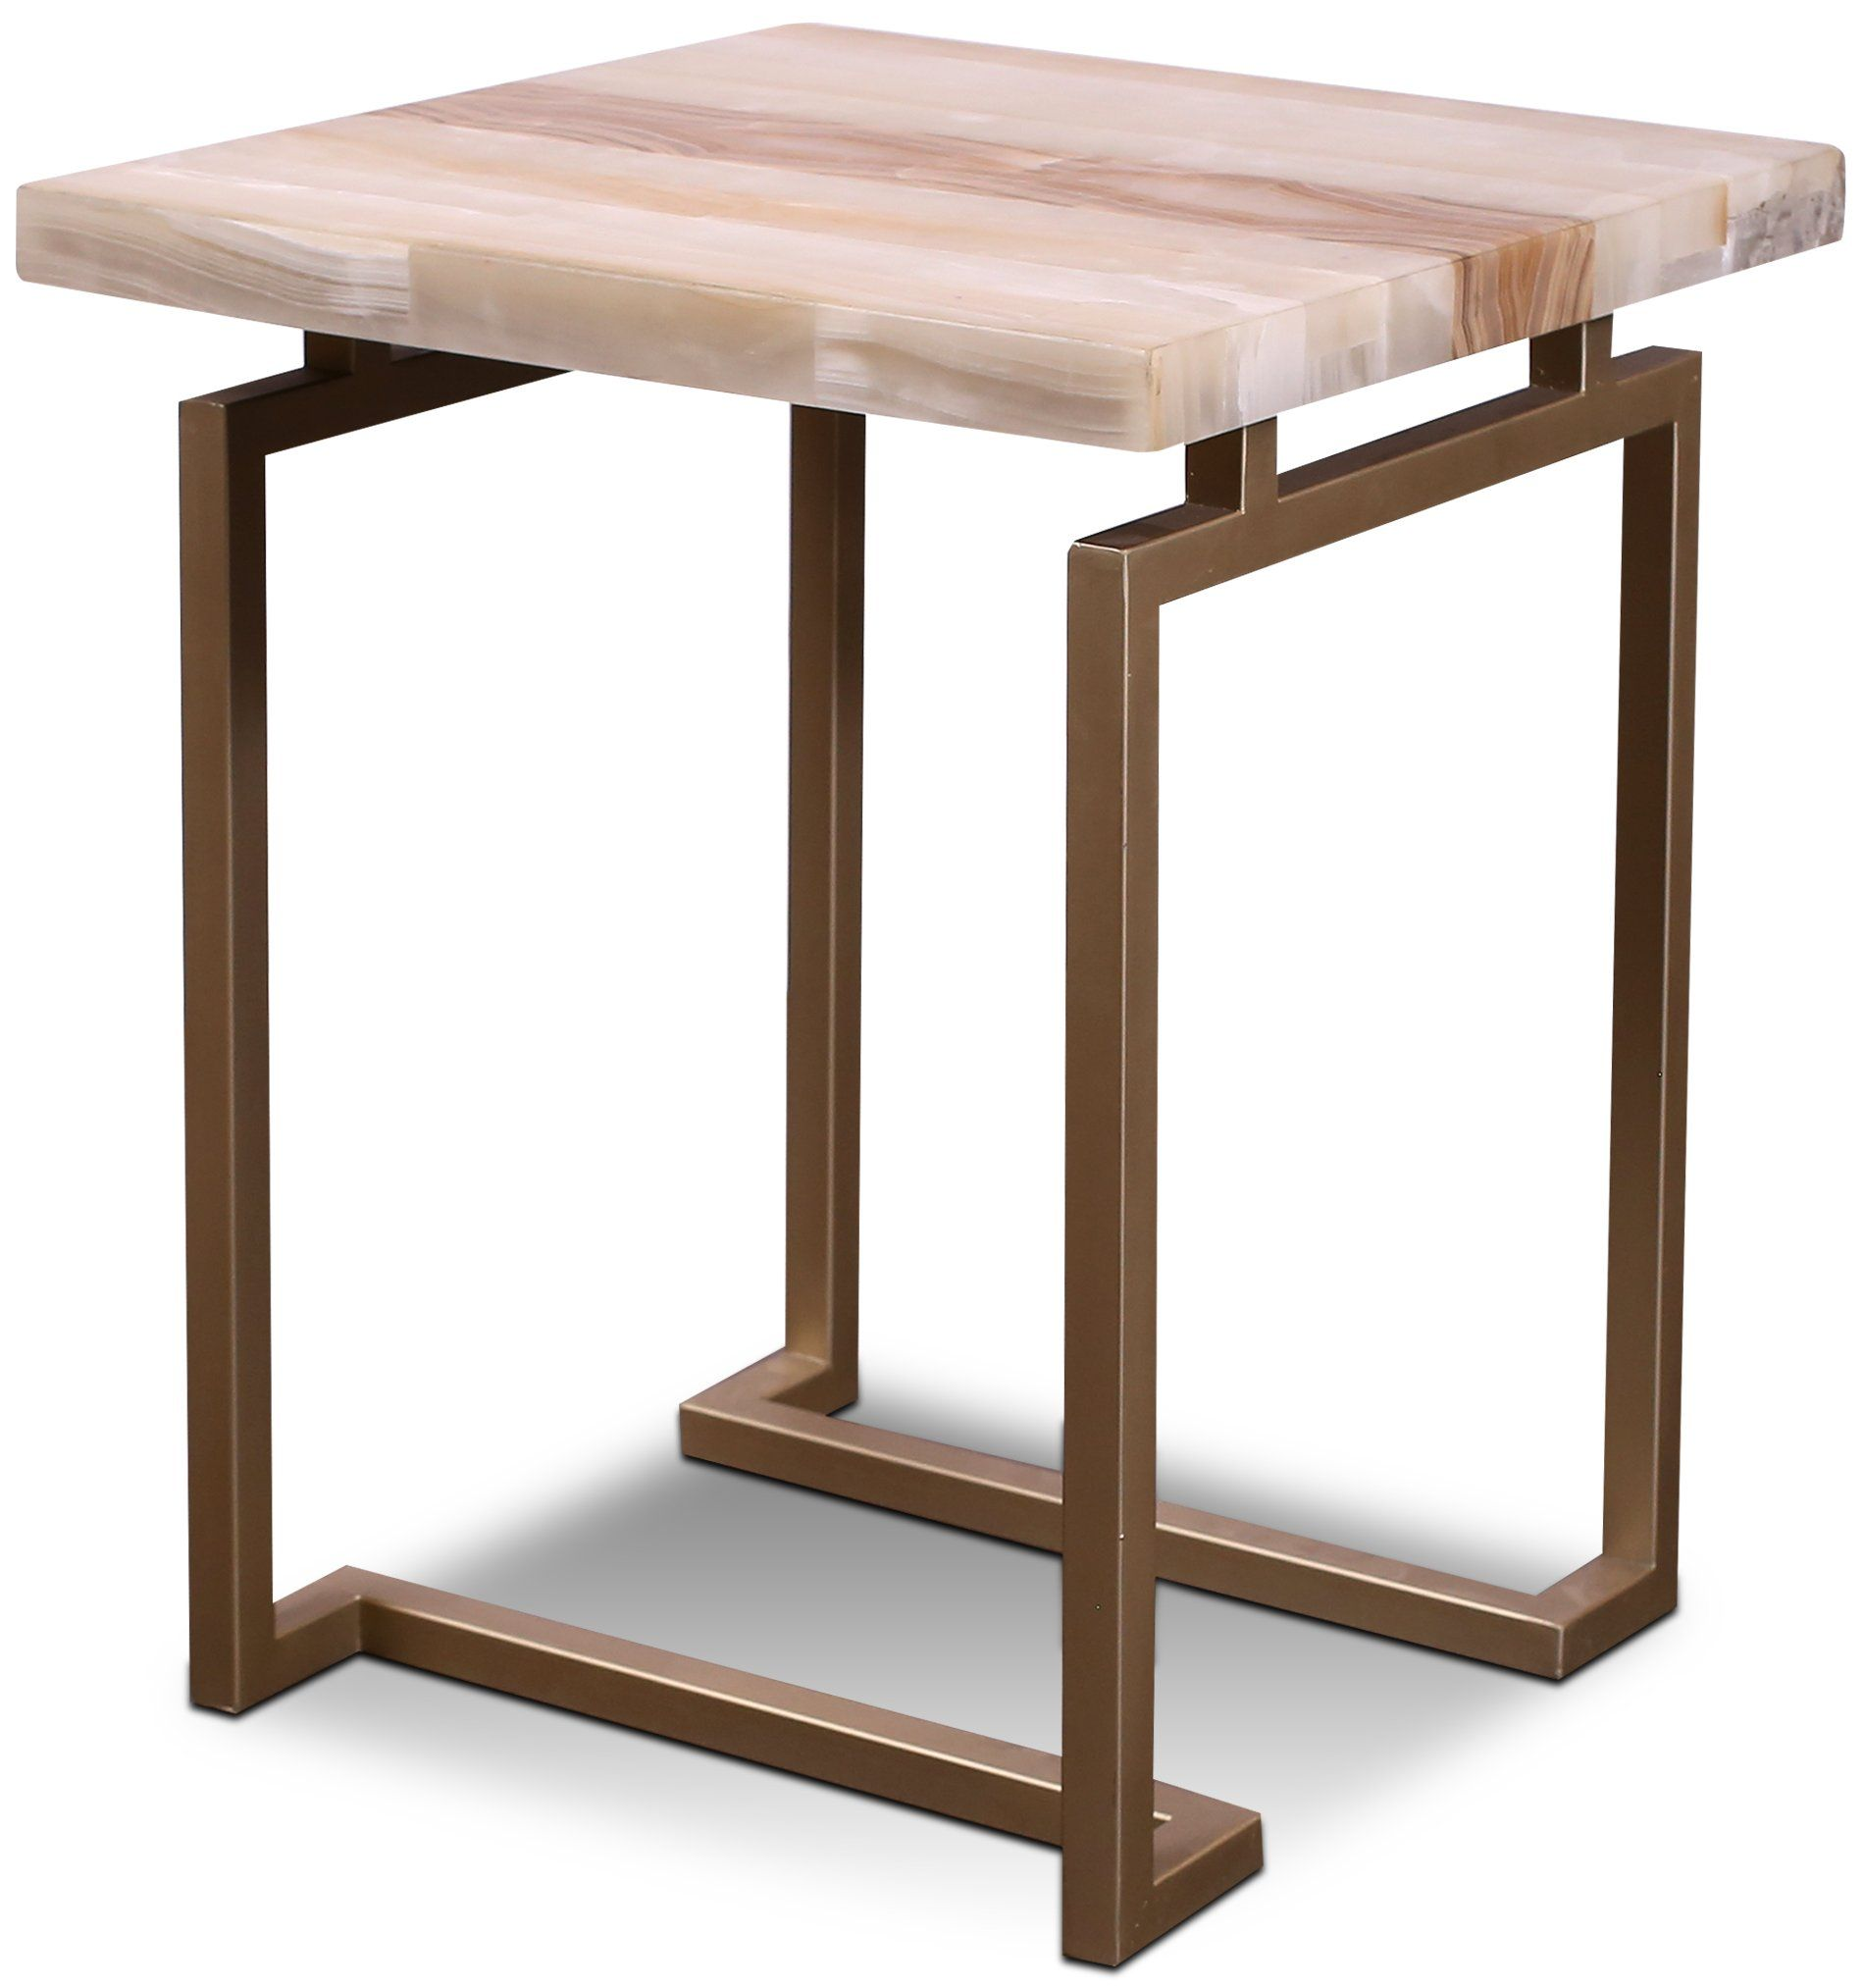 Onyx And Gold End Table Spectrum Gold End Table End Tables Rc Willey Furniture [ 2026 x 1899 Pixel ]